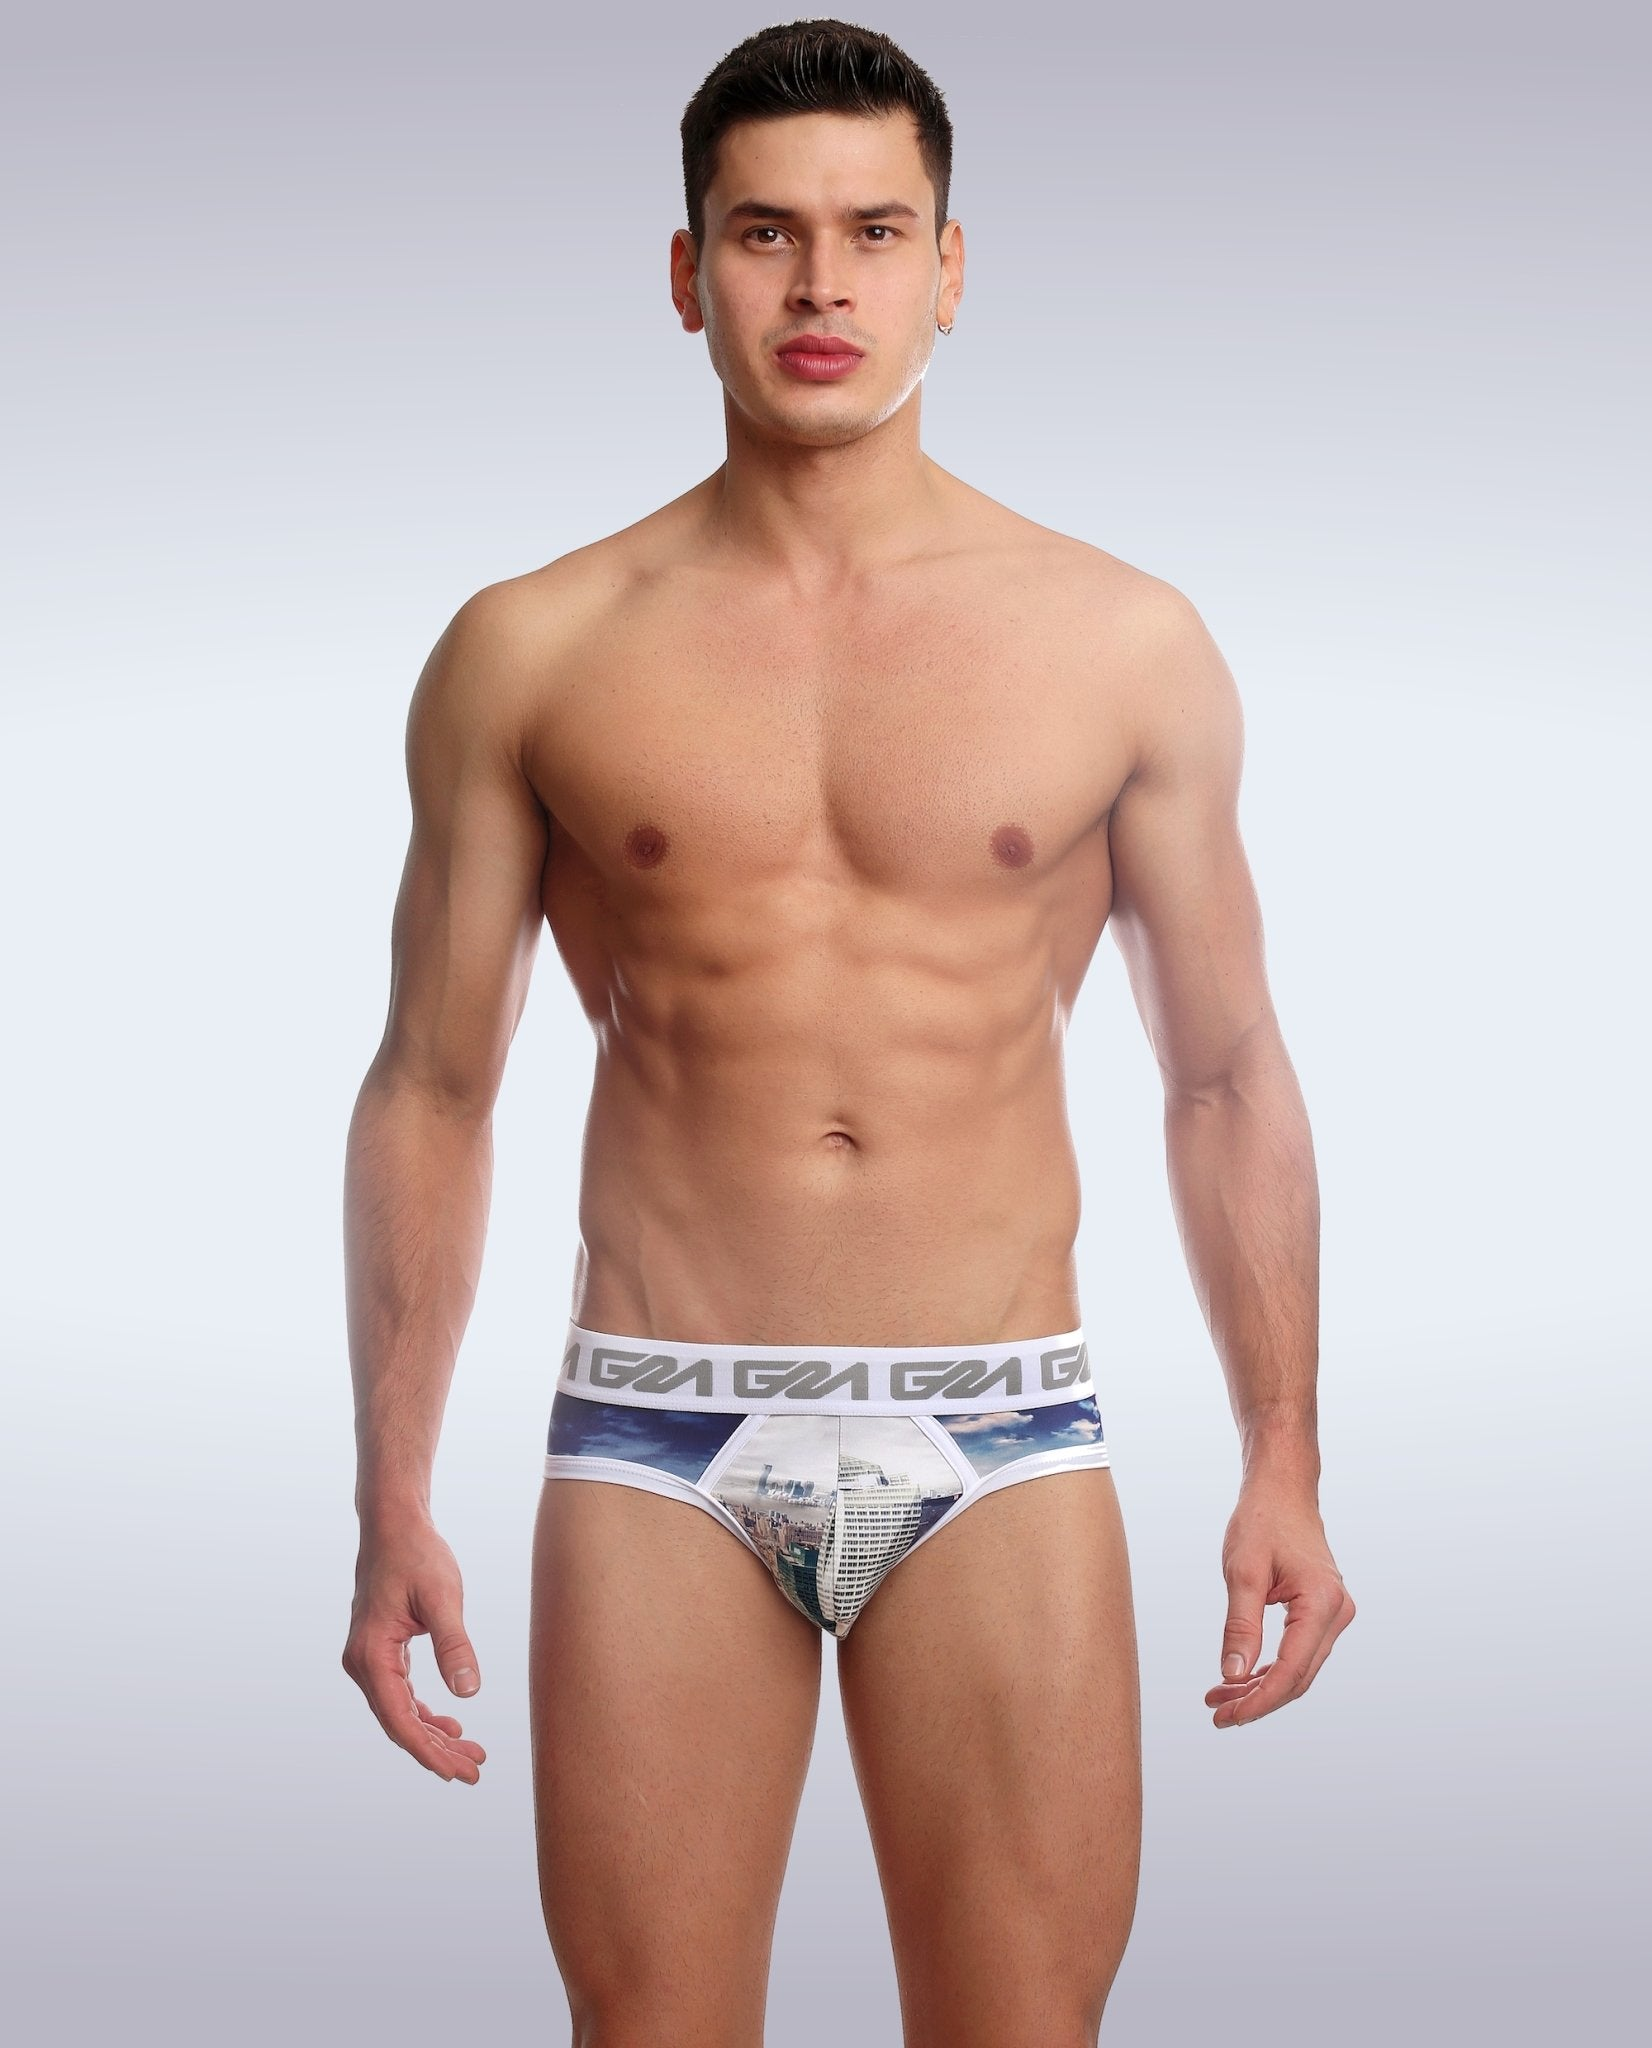 New York Briefs - Garçon Underwear sexy men's underwear Briefs Garçon Underwear